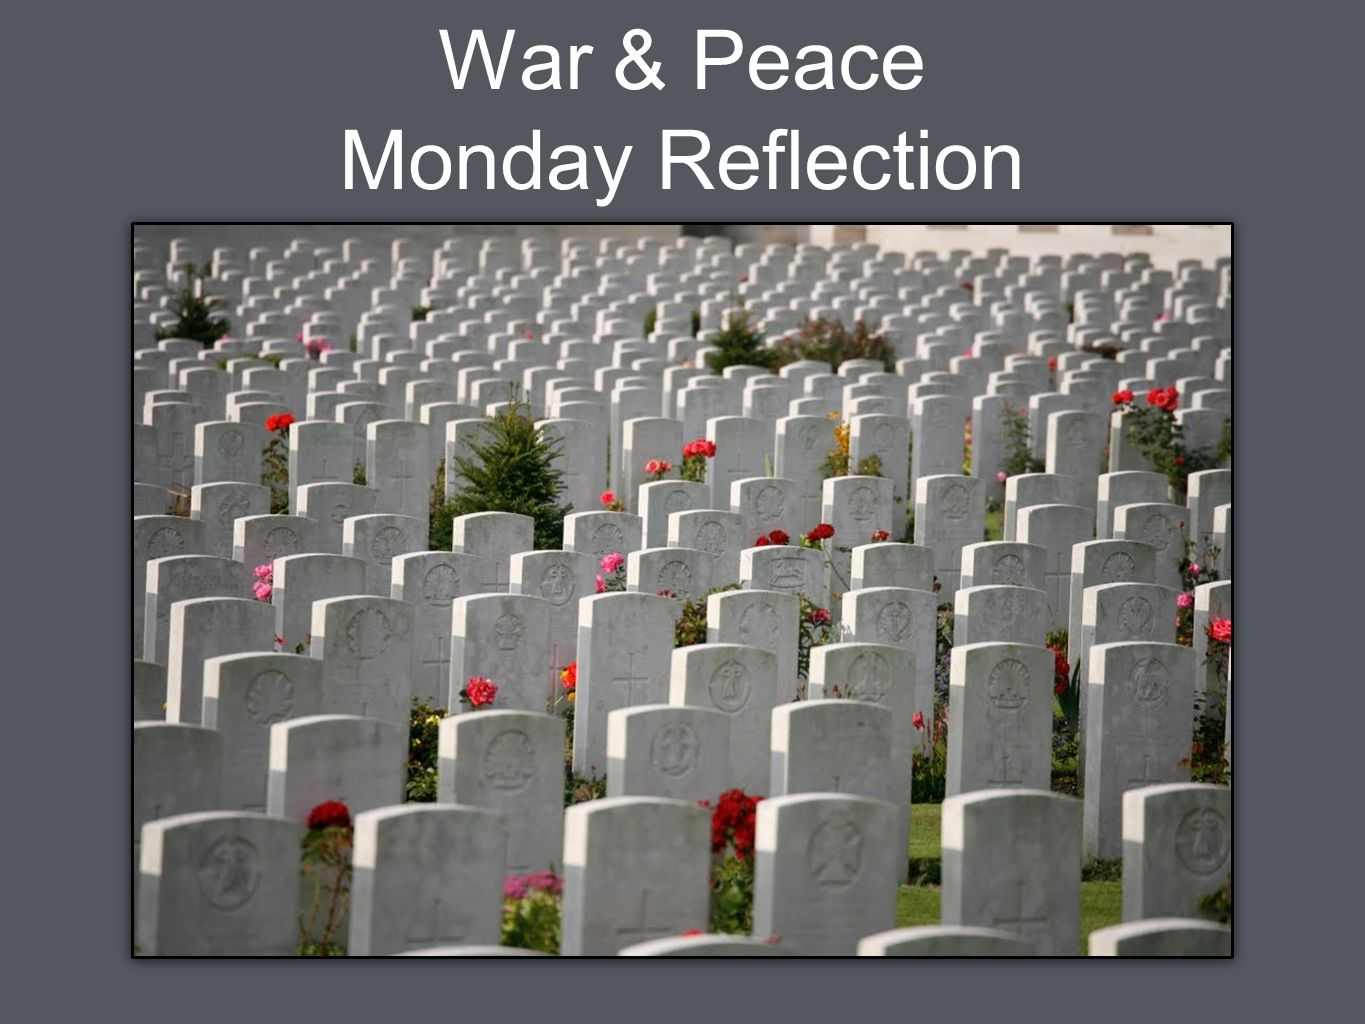 War & Peace Monday Reflection